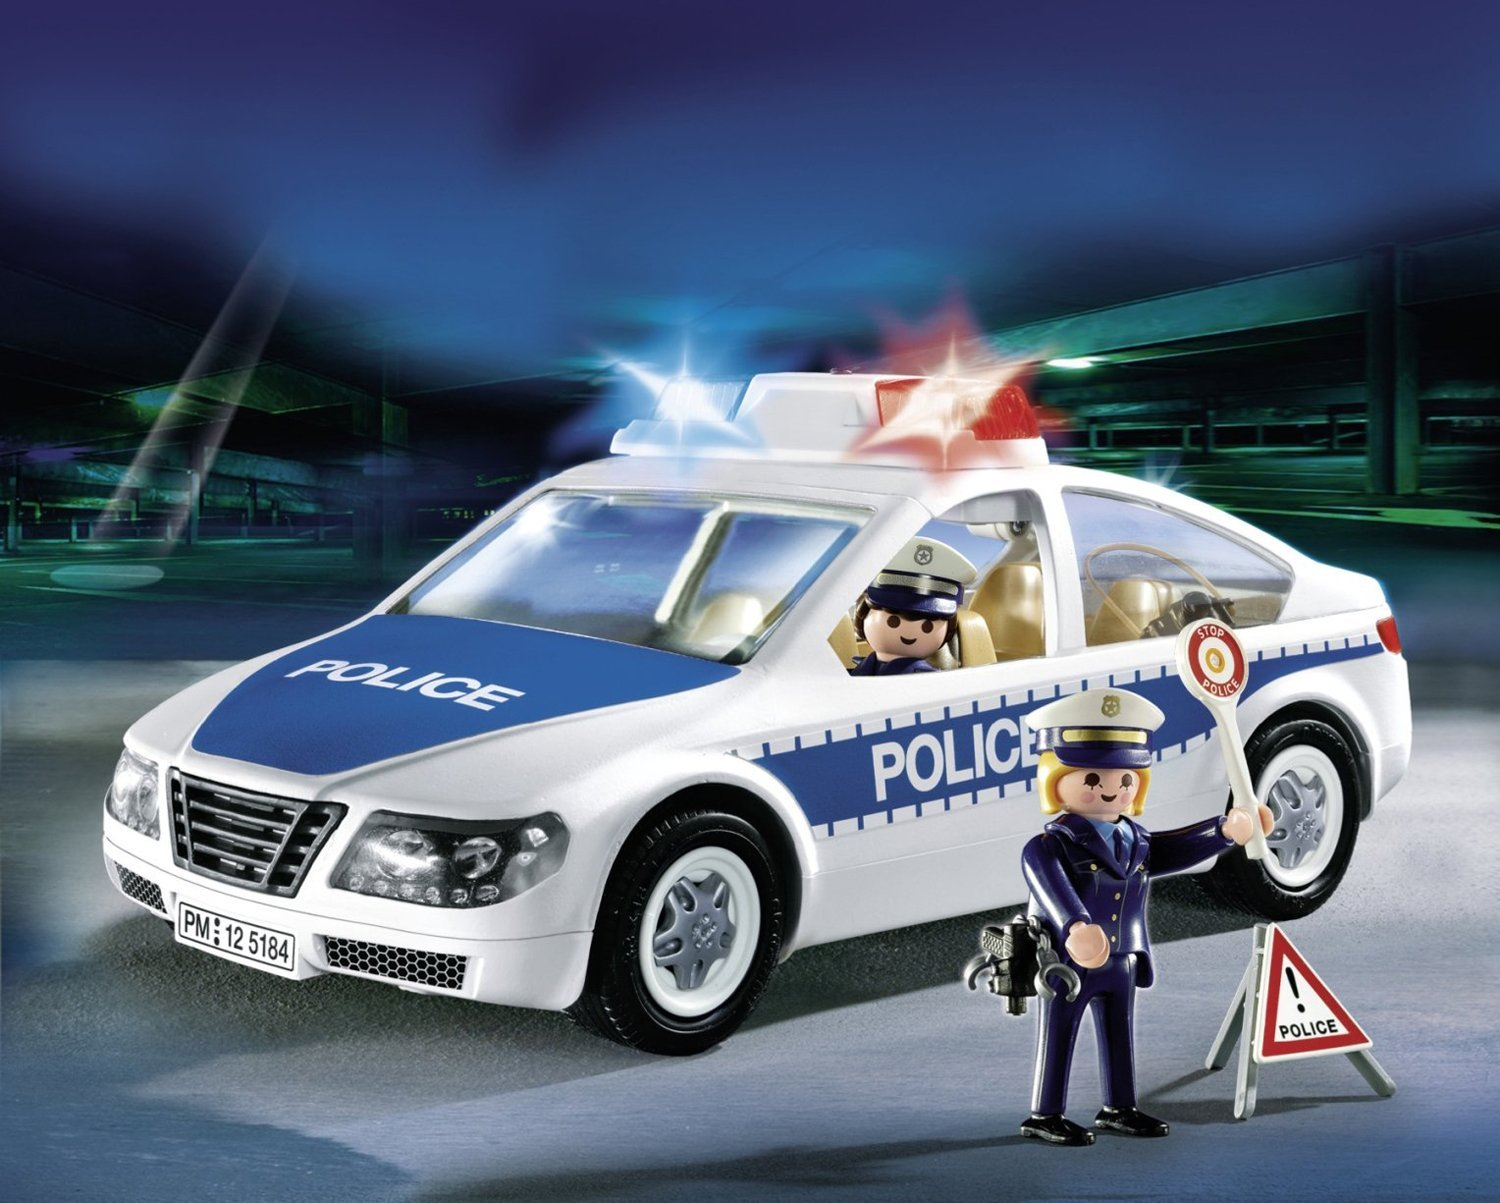 playmobil police car with flashing light - best educational infant